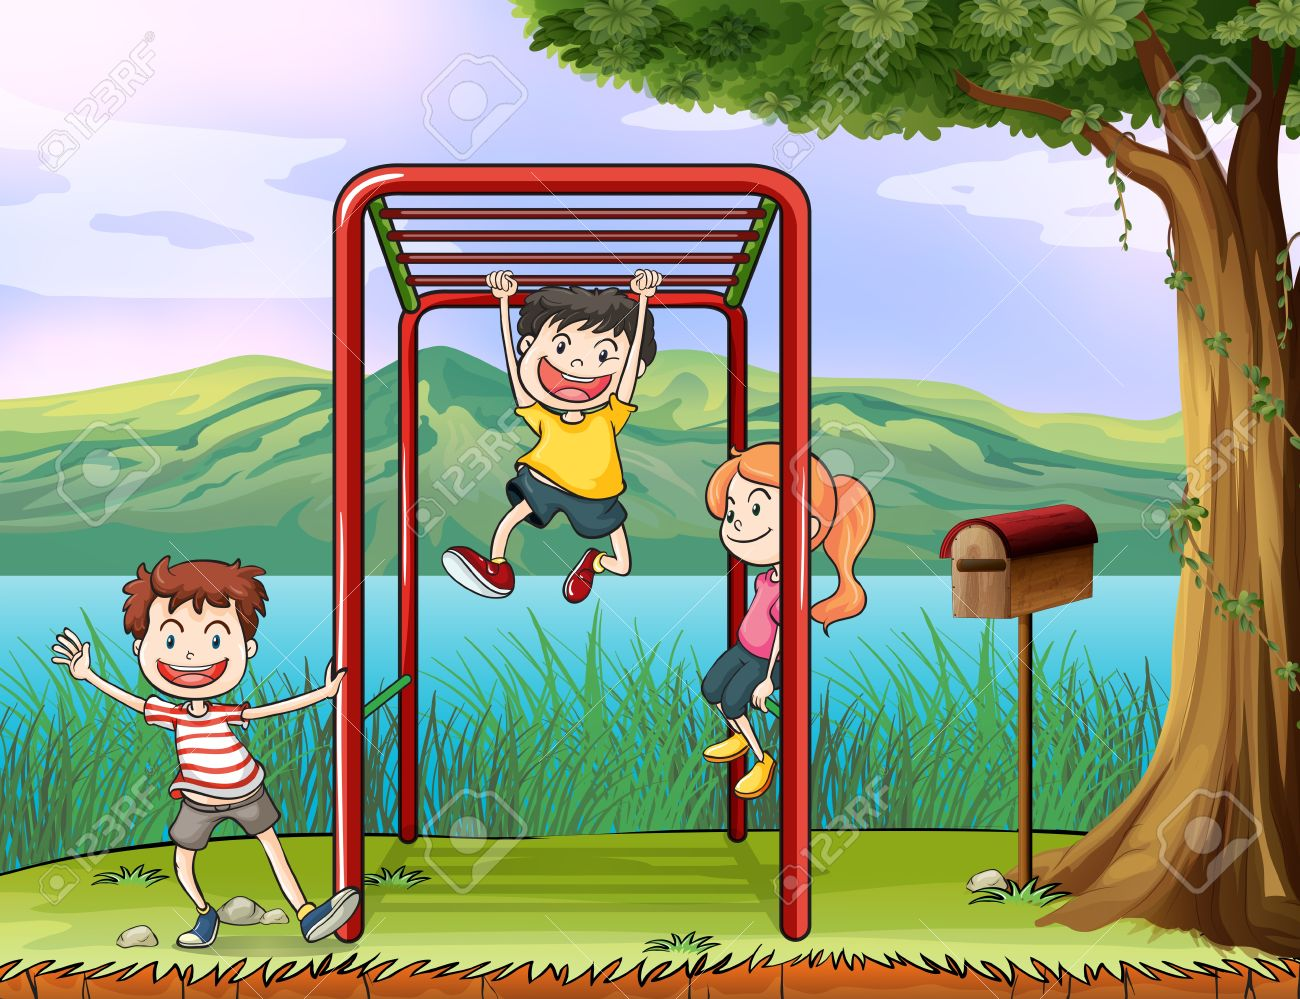 Illustration Of Kids Playing Monkey Bar And A Letter Box Royalty ...